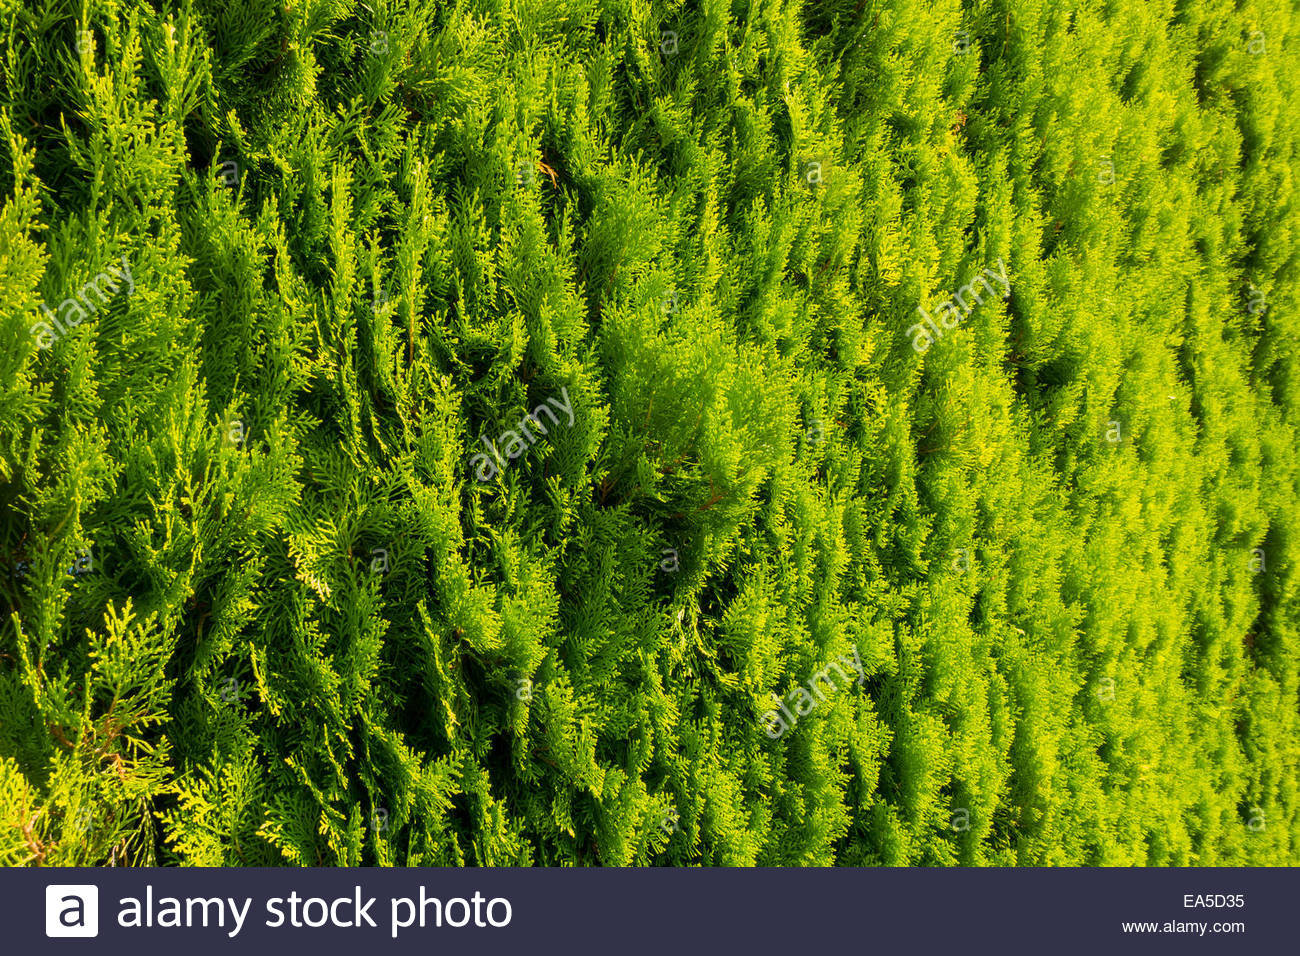 thuja tree stockfotos thuja tree bilder alamy. Black Bedroom Furniture Sets. Home Design Ideas